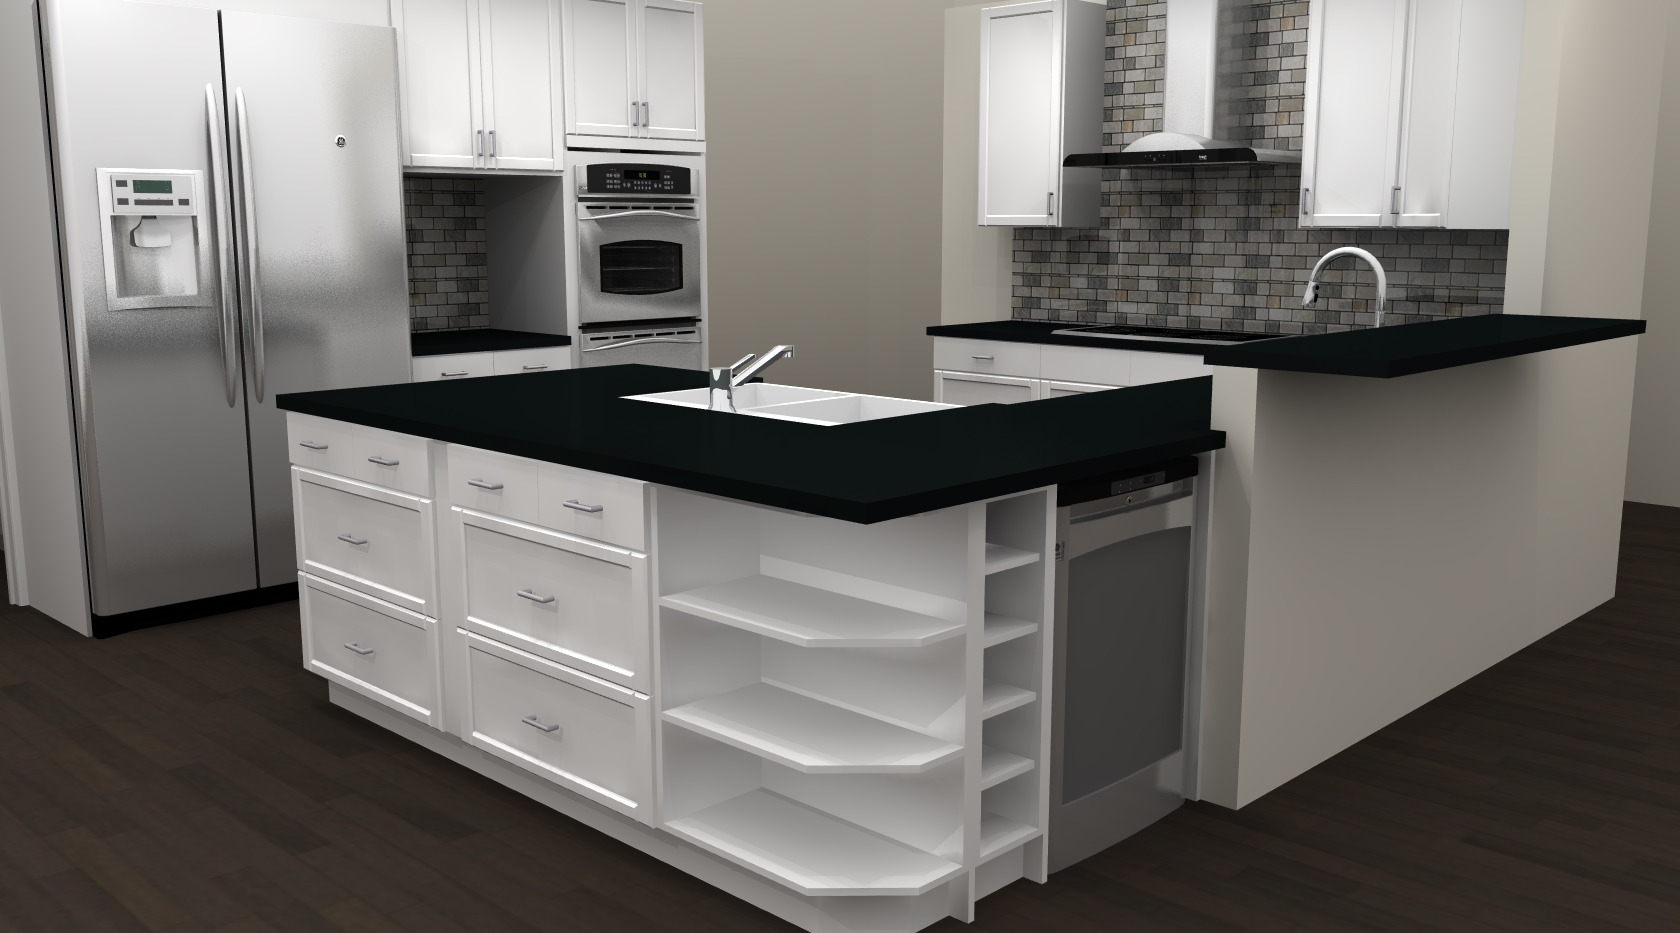 Ikea Kitchen Flooring IKEA Kitchen Remodel Brandon Render 4 Like A Mullet This 80 39 S Kitchen